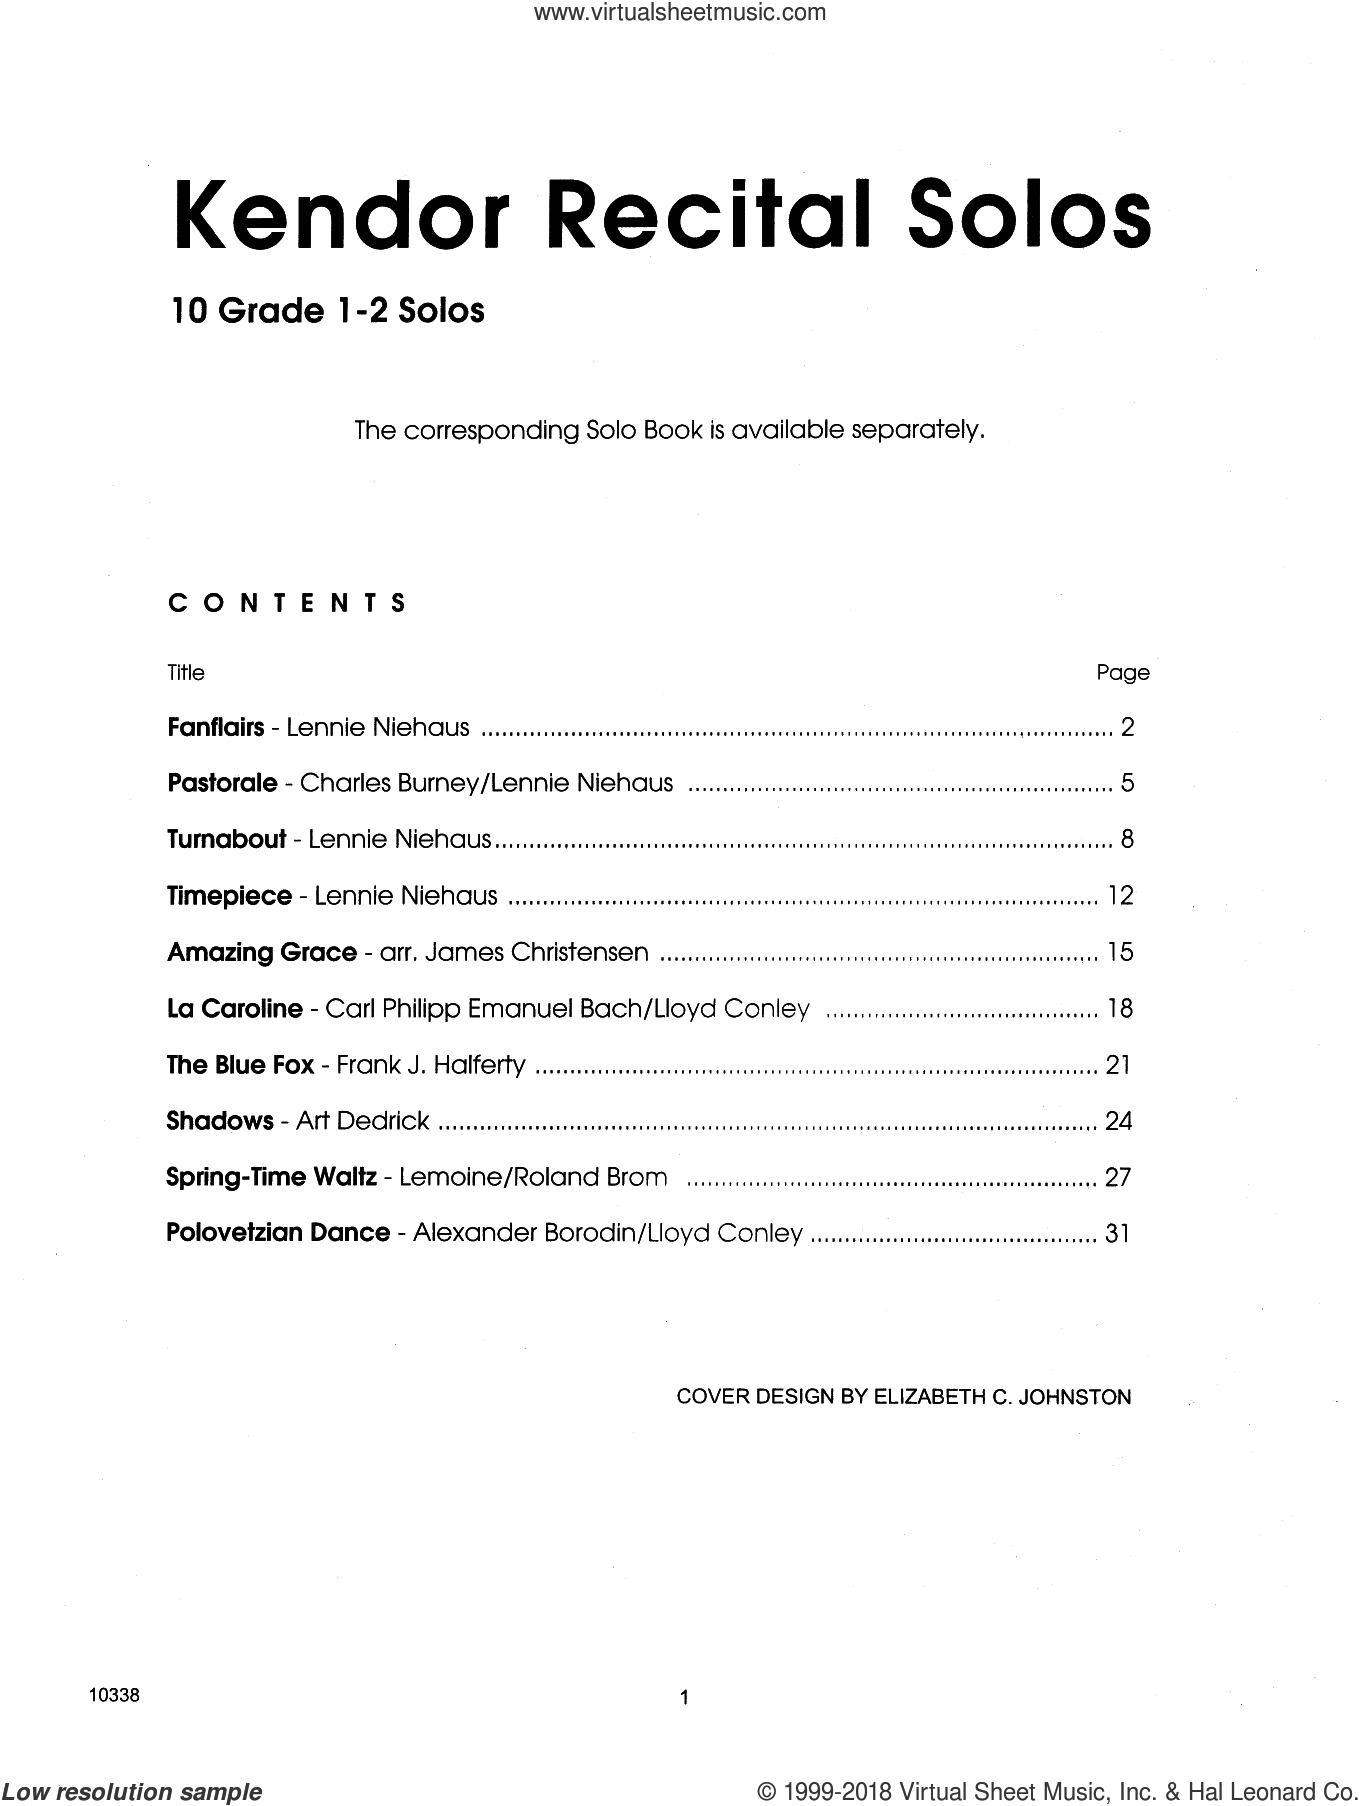 Kendor Recital Solos - Tenor Saxophone (Piano Accompaniment Book Only) sheet music for tenor saxophone and piano